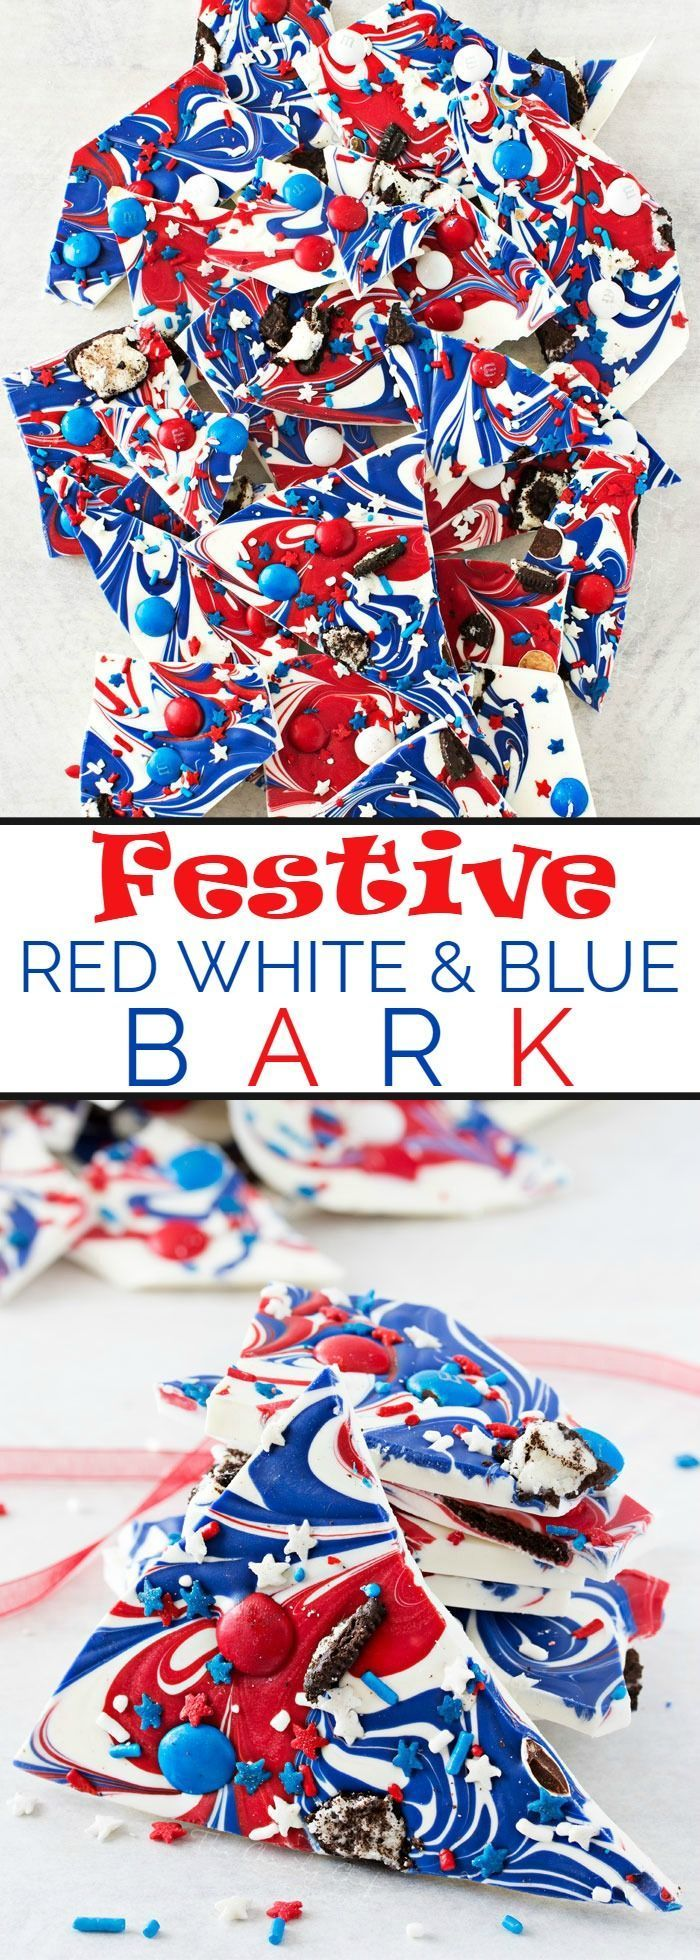 Festive Red White and Blue Bark   This simple and fun no-bake bark recipe is perfect for Memorial Day or Independence Day! So simple, even your kids can make it!   thechunkychef.com